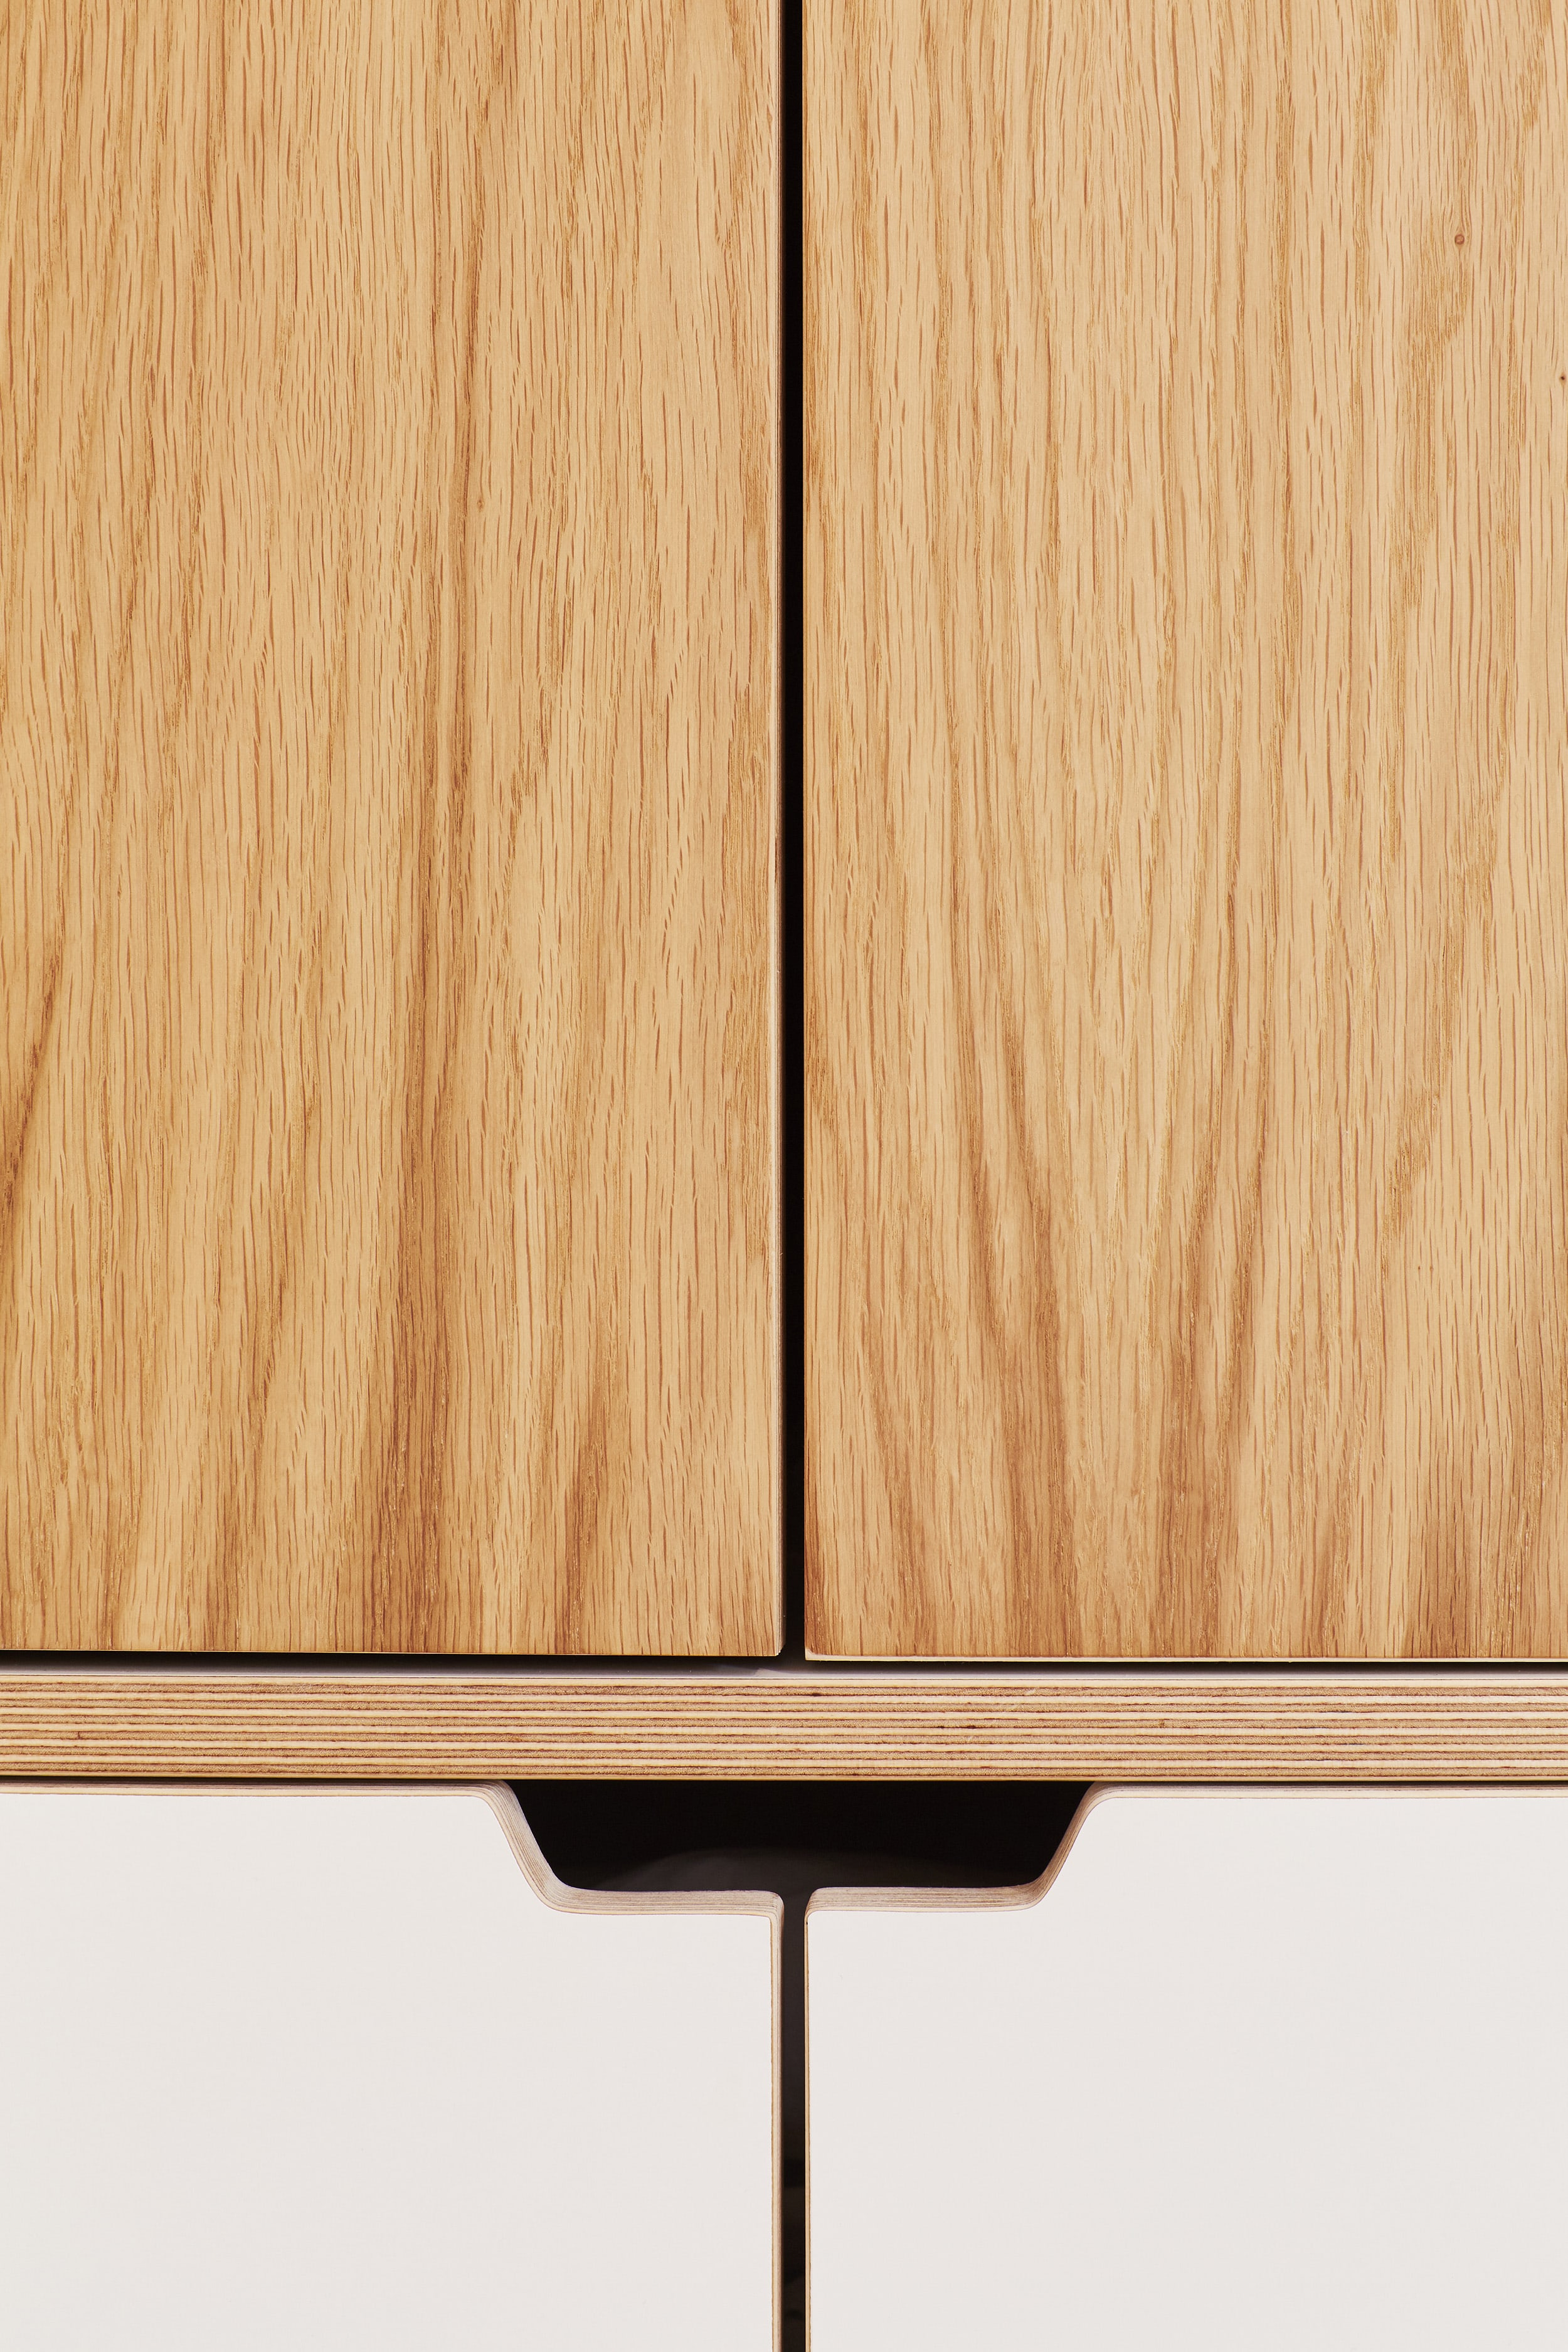 A close up of the handles from the plywood wardrobes designed by Lozi in Cass's home in Dalston, London E8.